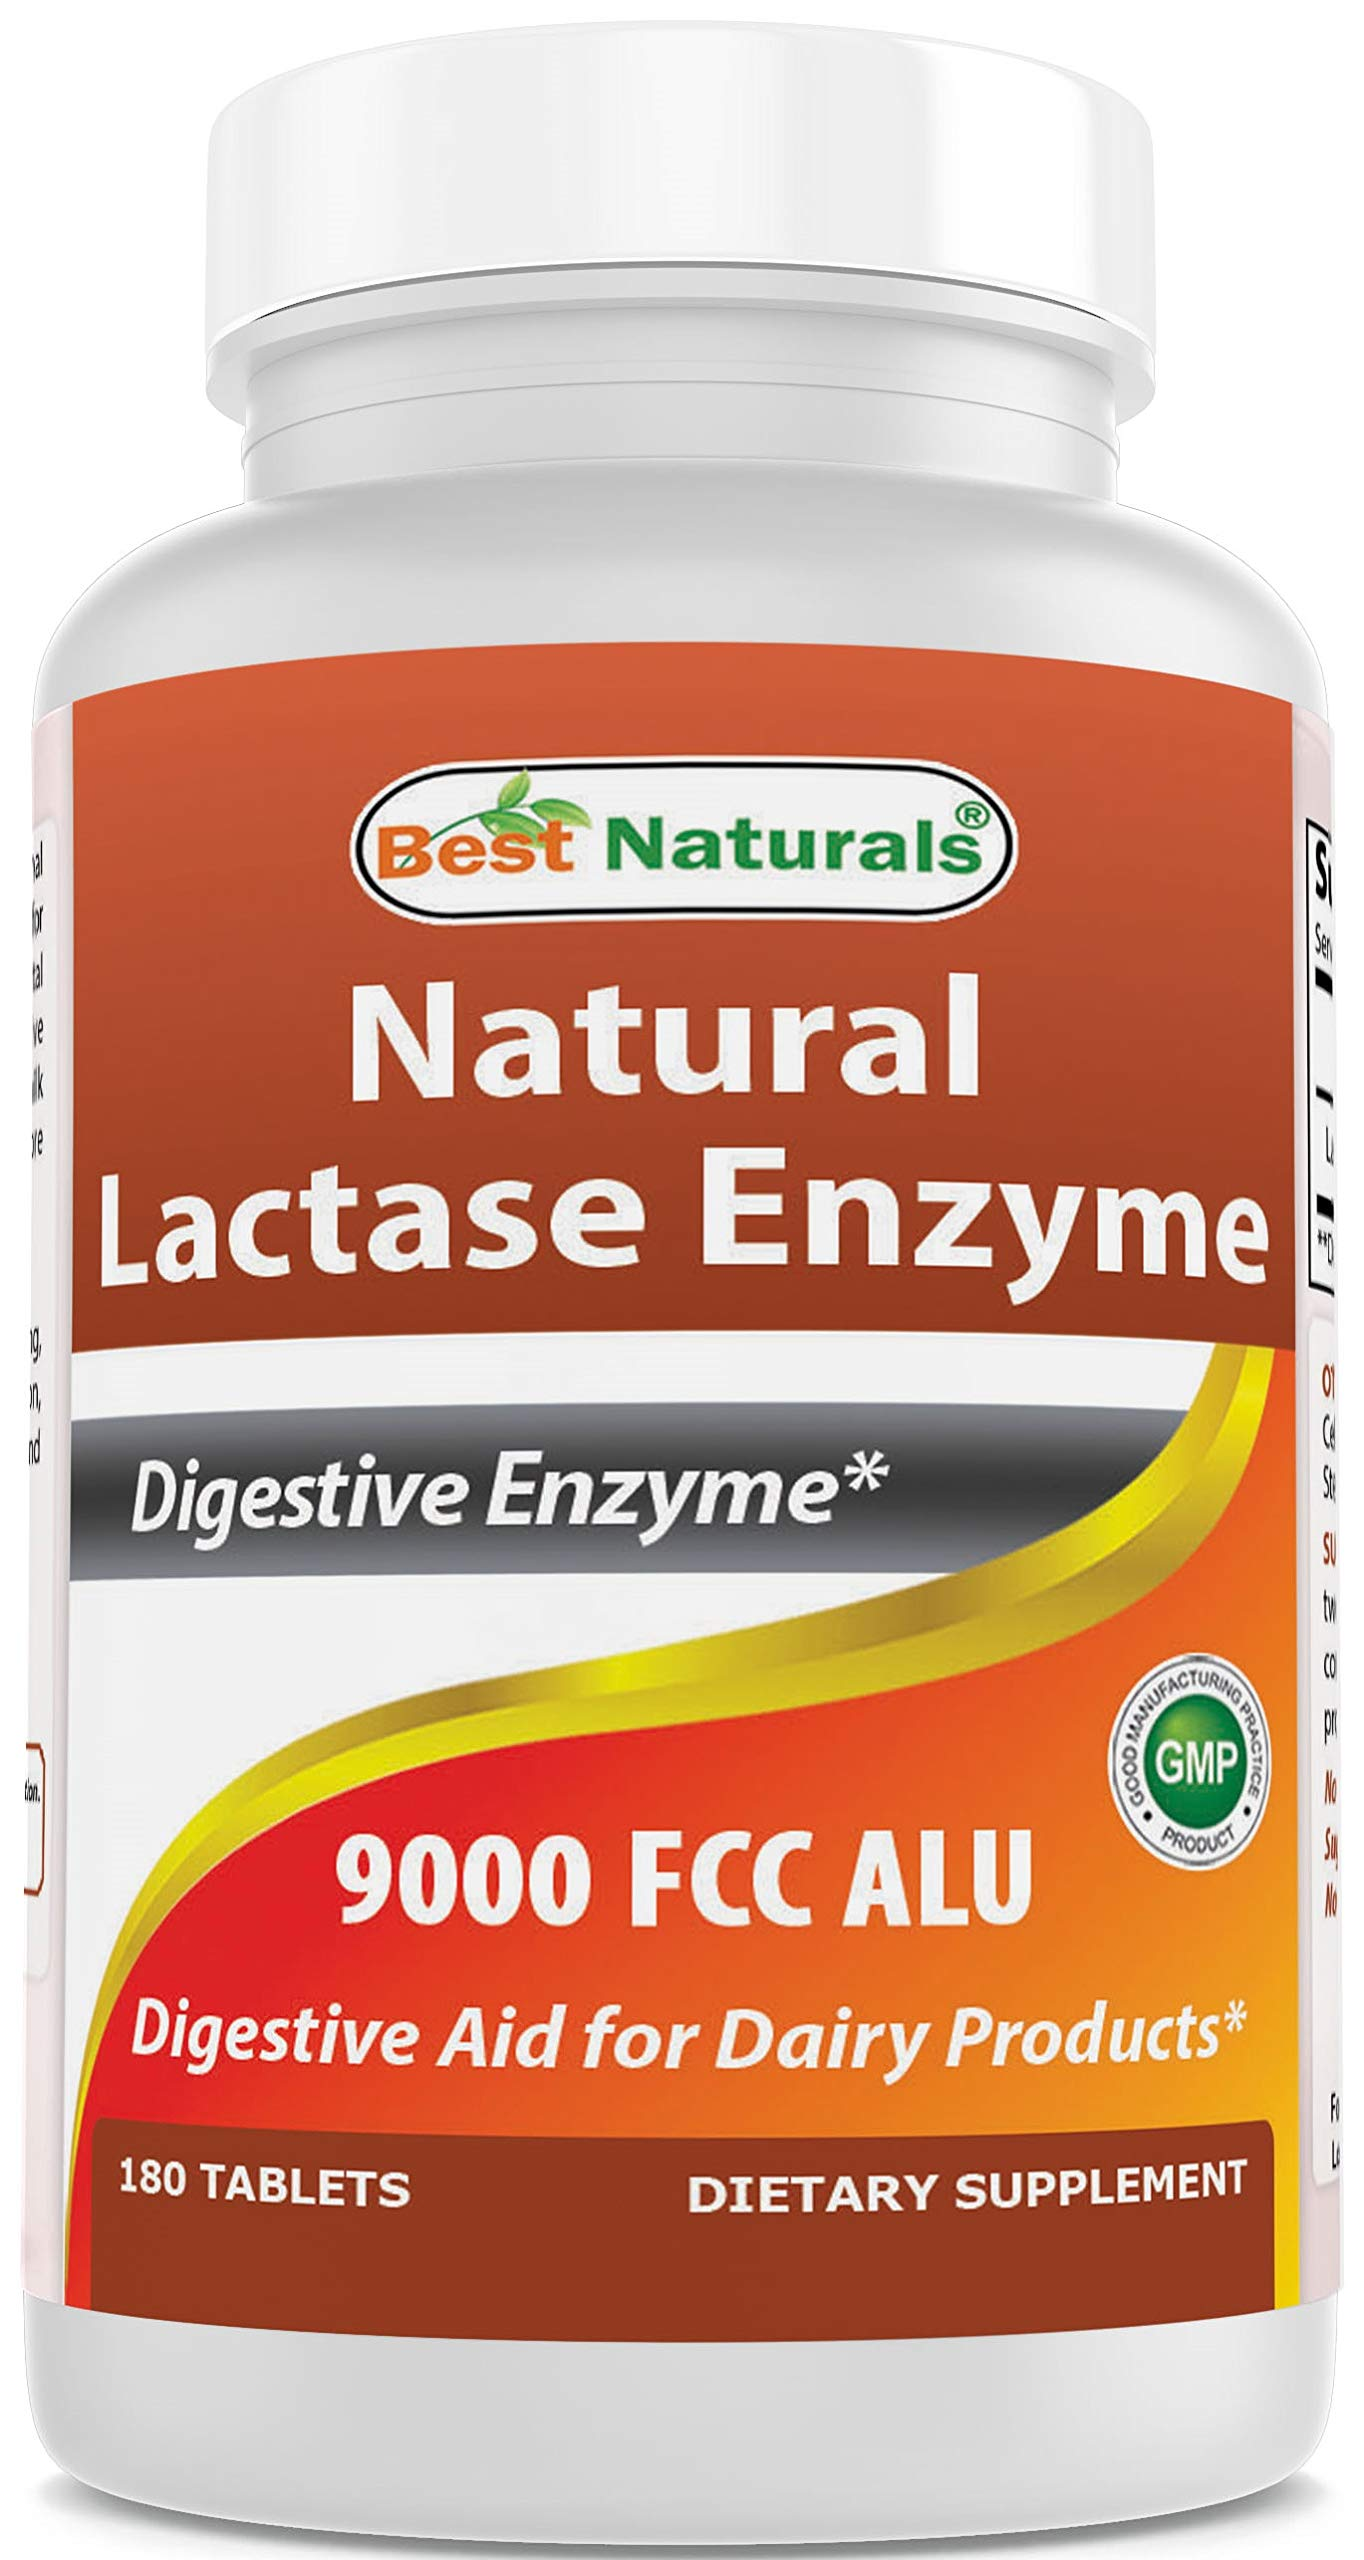 Best Naturals Lactose Intolerance Relief Tablets with Natural Lactase Enzyme, Fast Acting High Potency Lactase, 9000 FCC ALU, 180 Count by Best Naturals